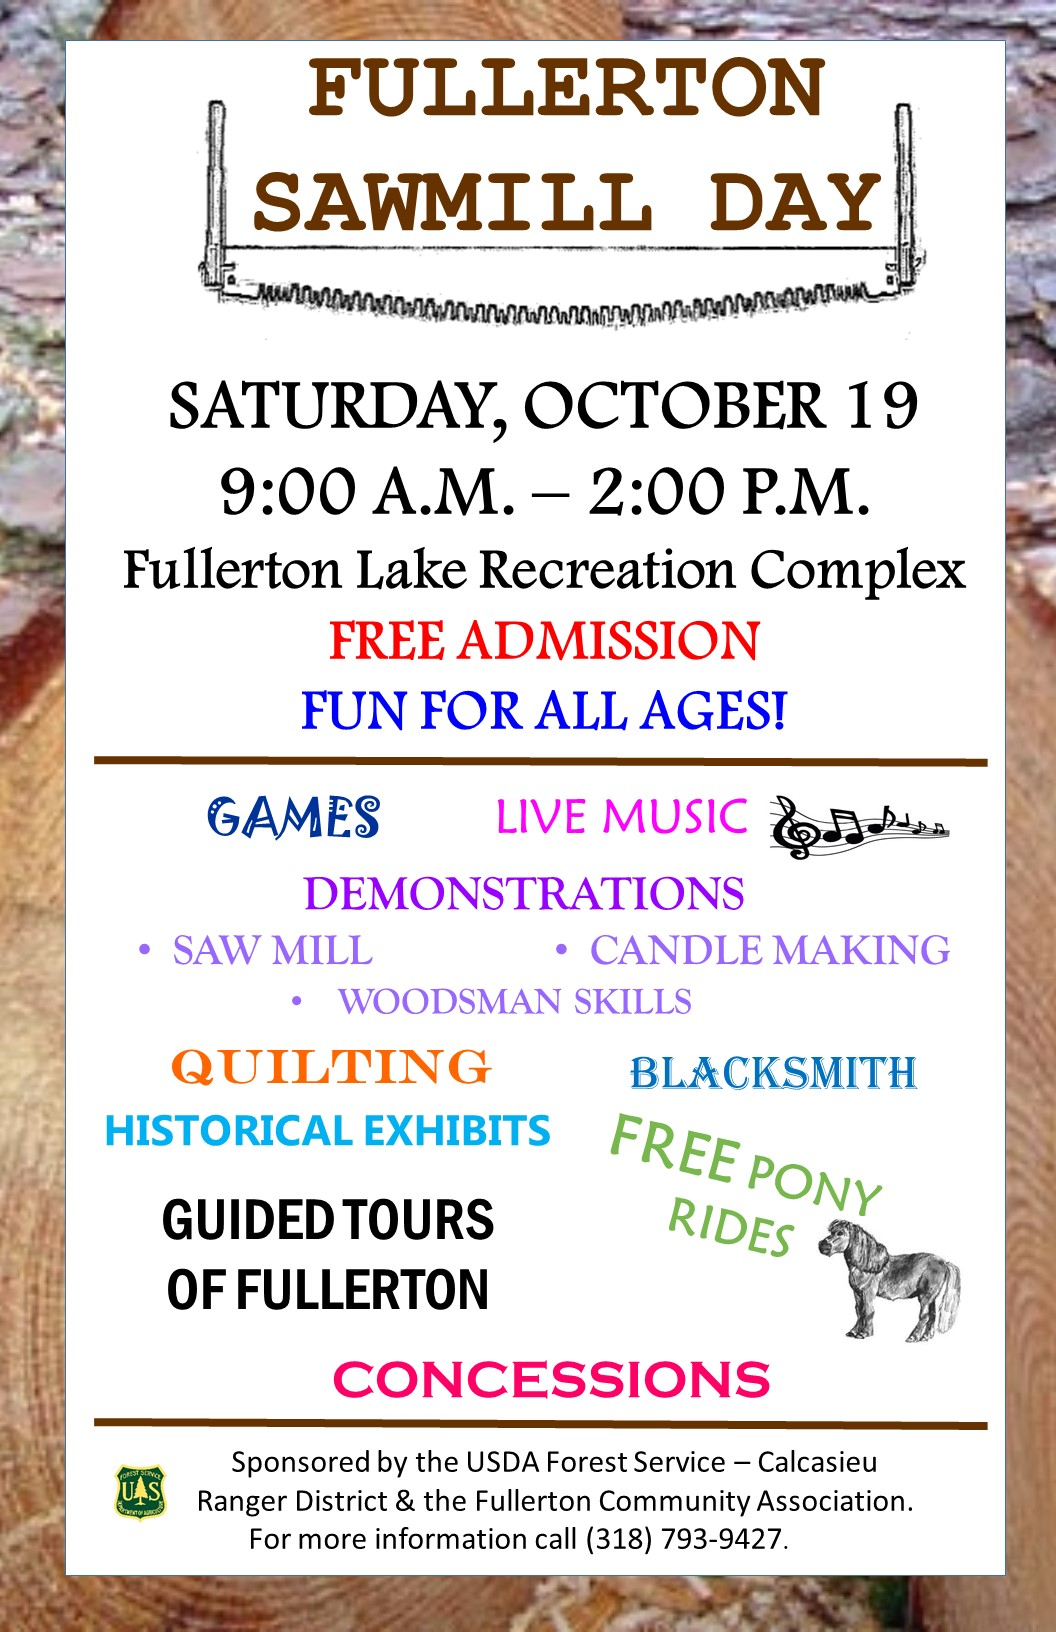 Flyer detailing activities at the 2019 Fullerton Sawmill Day